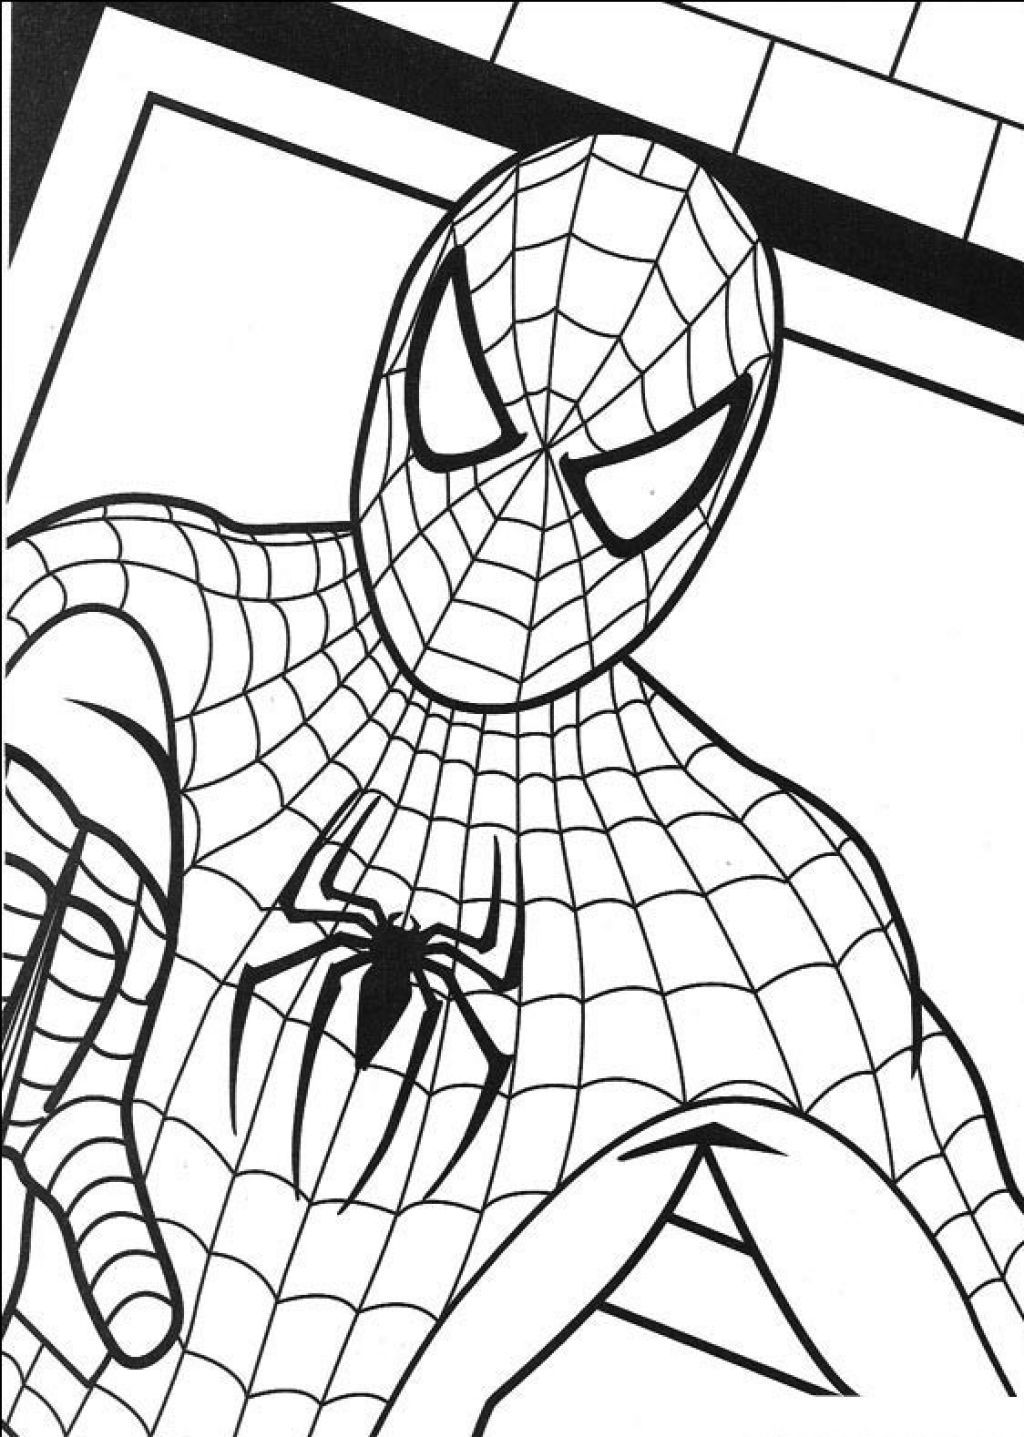 coloring spiderman color spiderman free to color for children spiderman kids color spiderman coloring